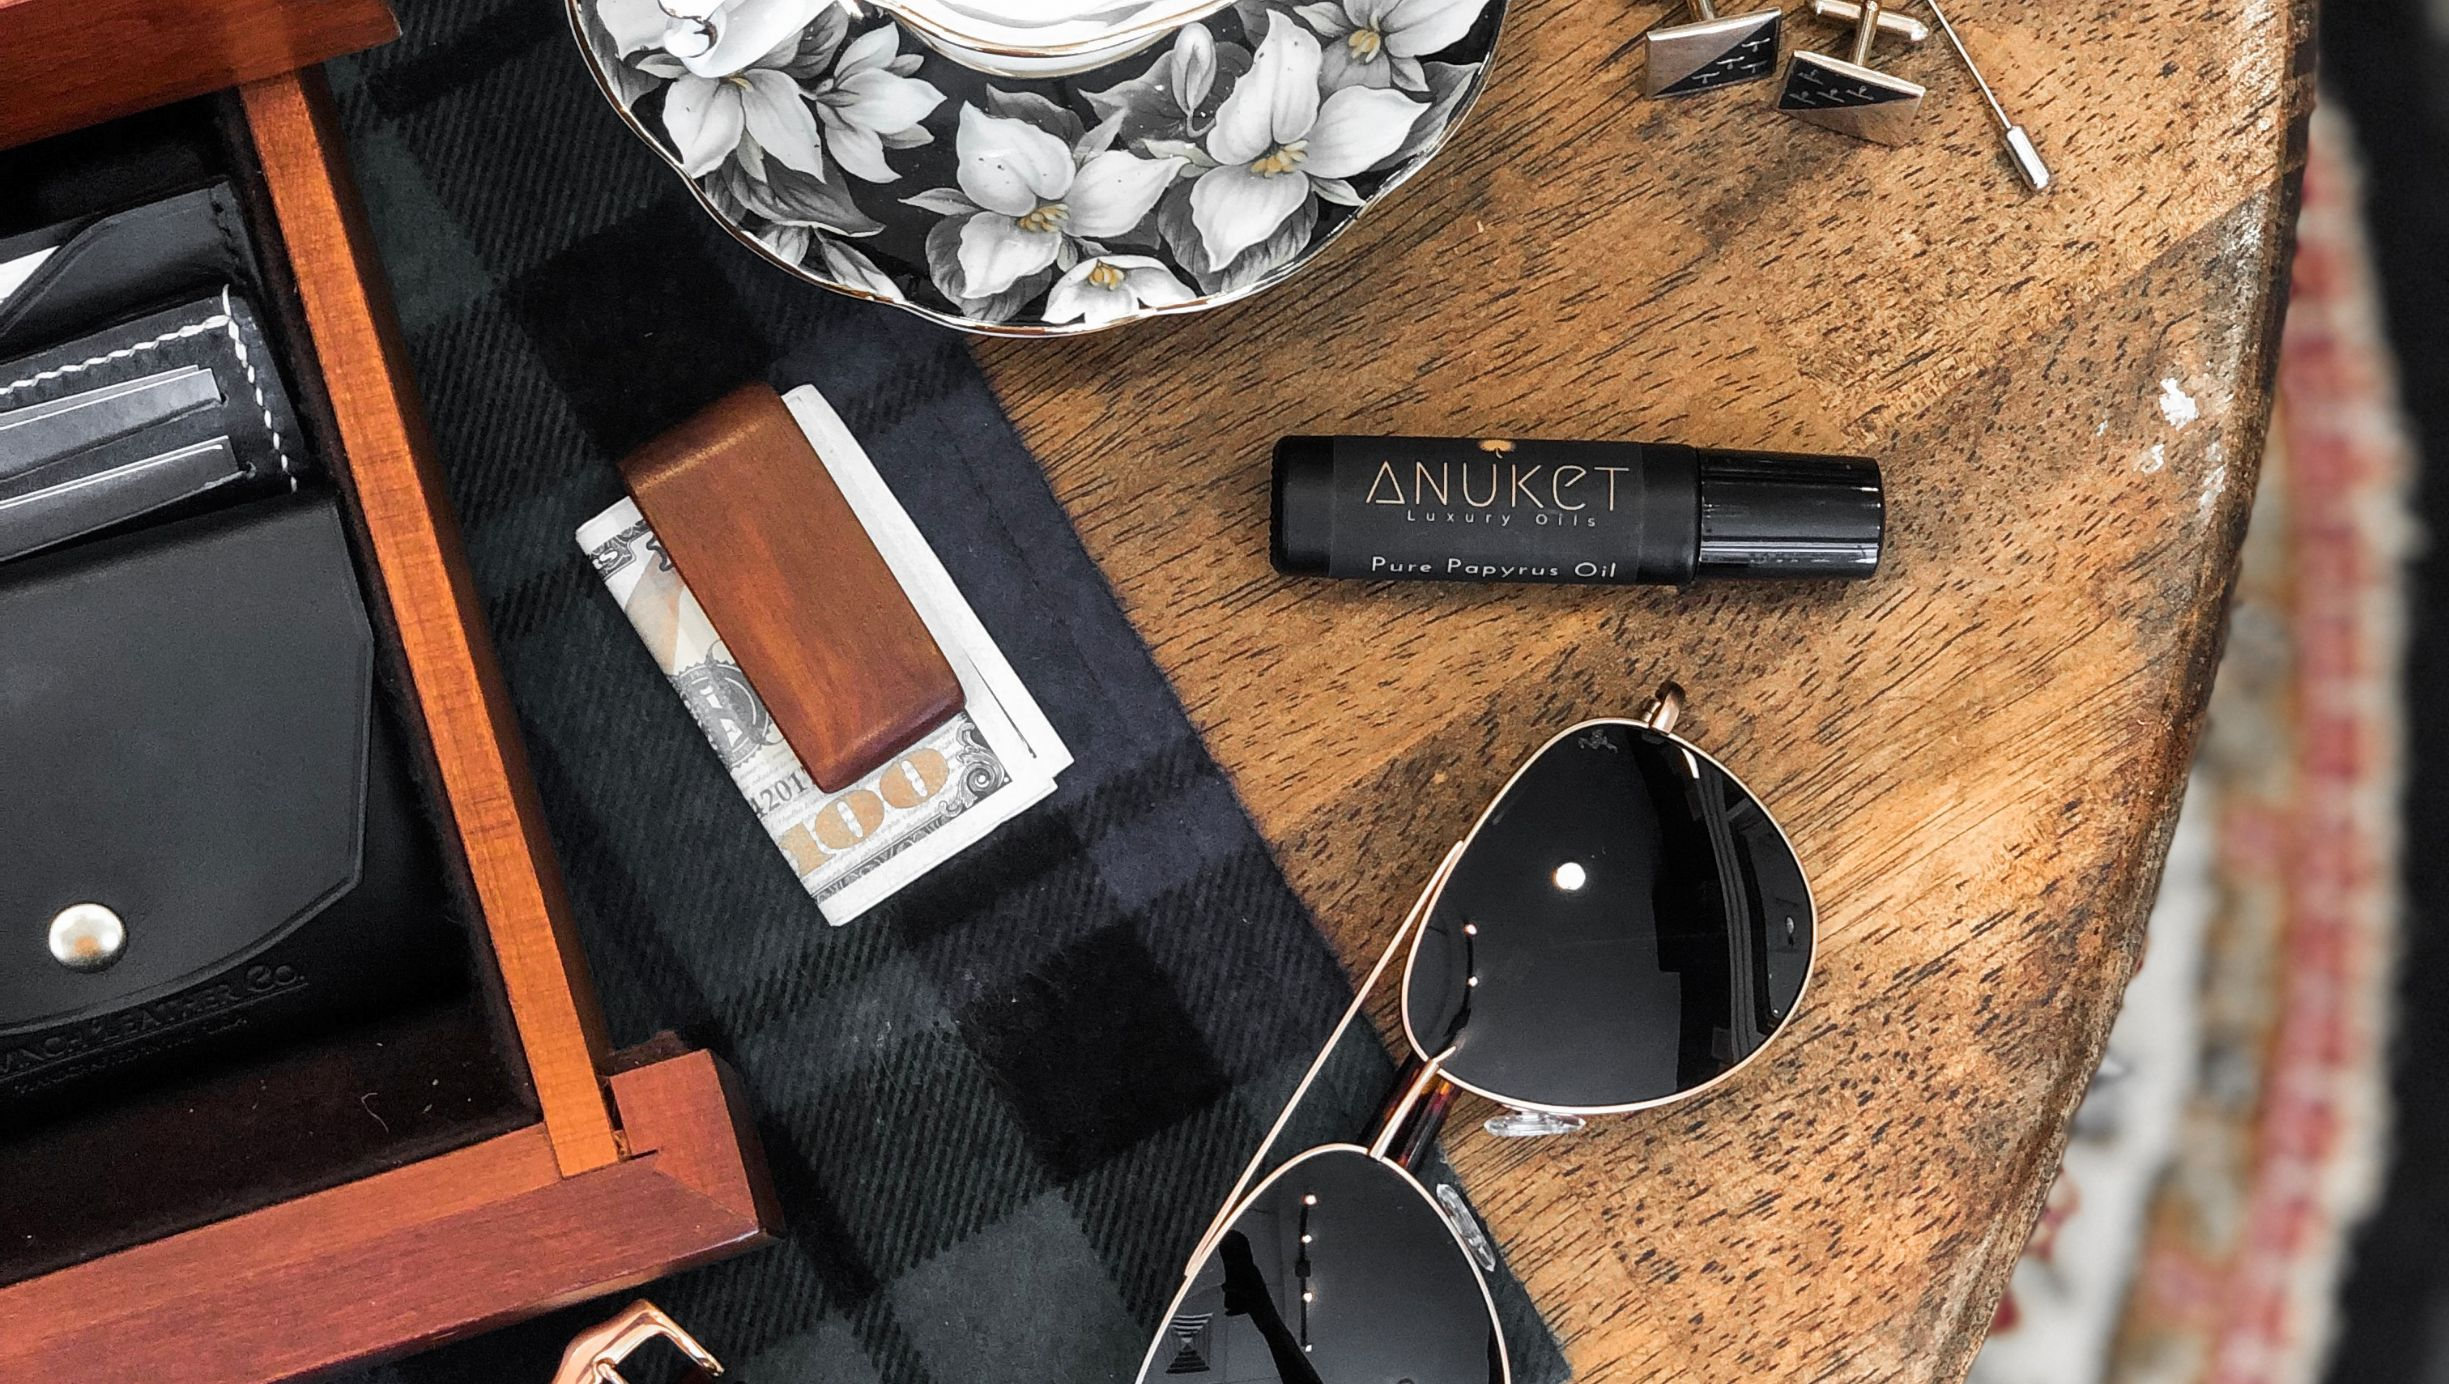 Anuket long-lasting papyrus oil cologne bottle in cigar box with cufflinks and other men's accessories